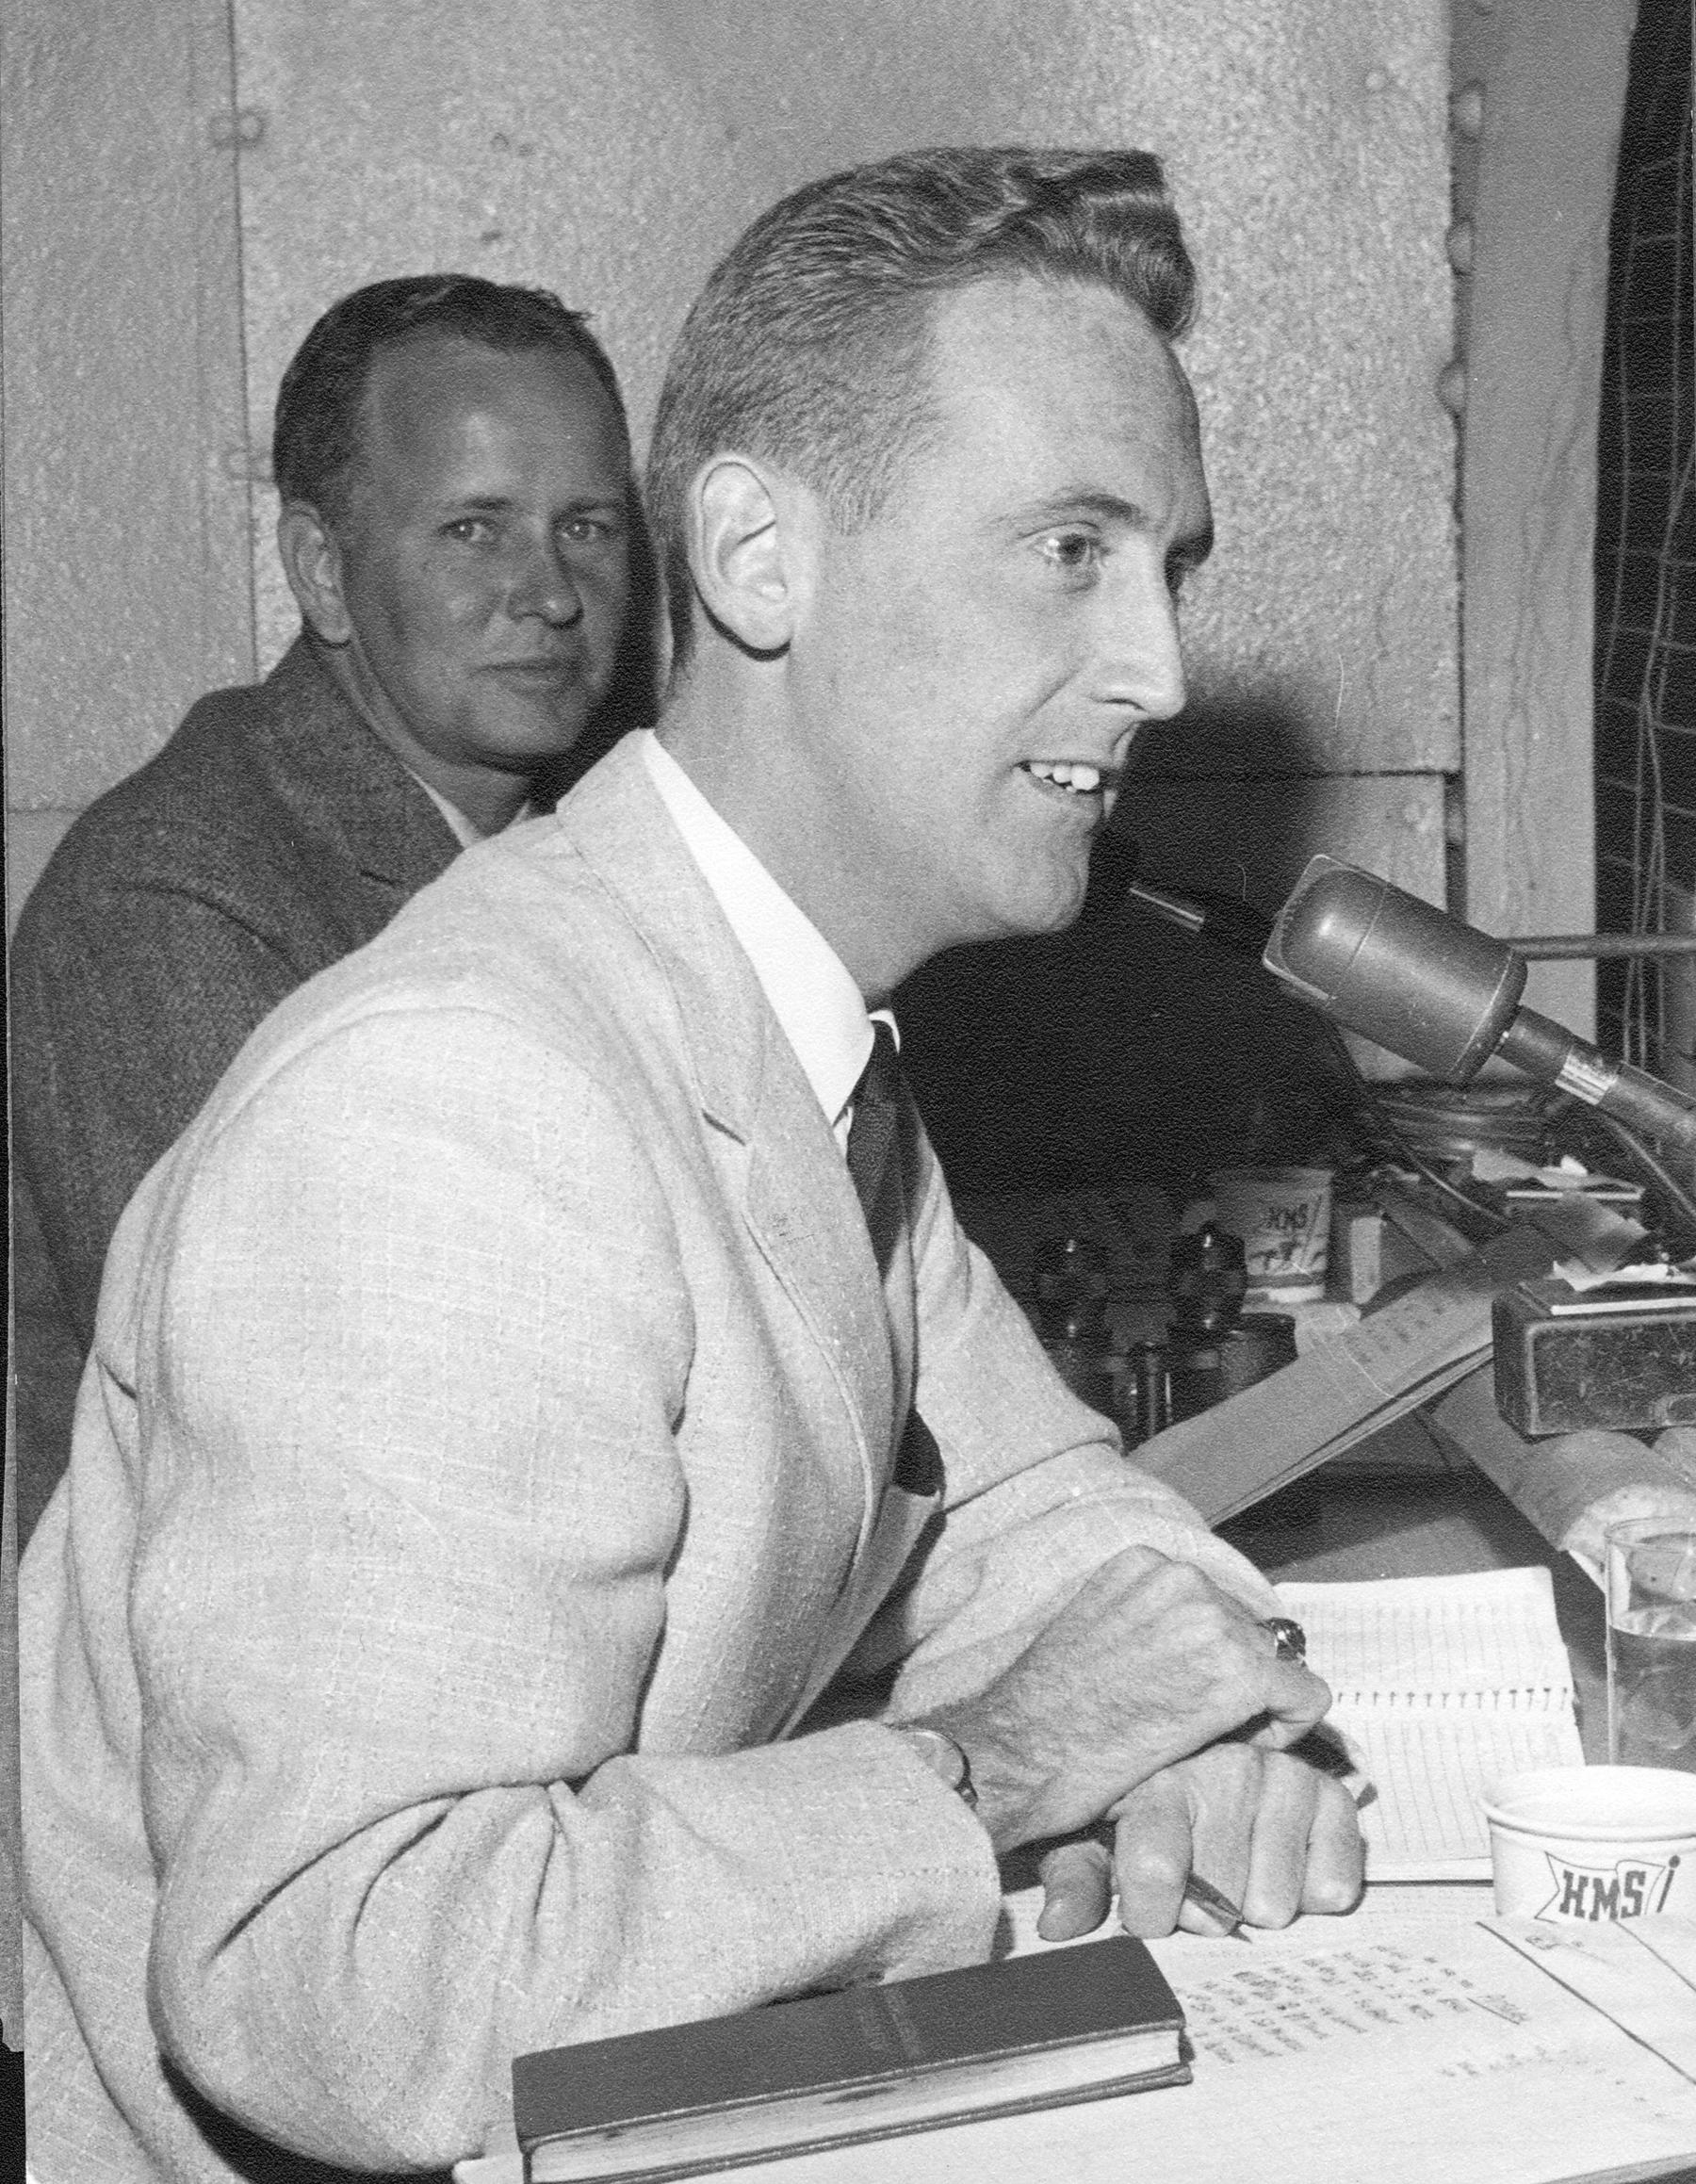 Vin Scully came to Cooperstown in 1951 | Baseball Hall of Fame